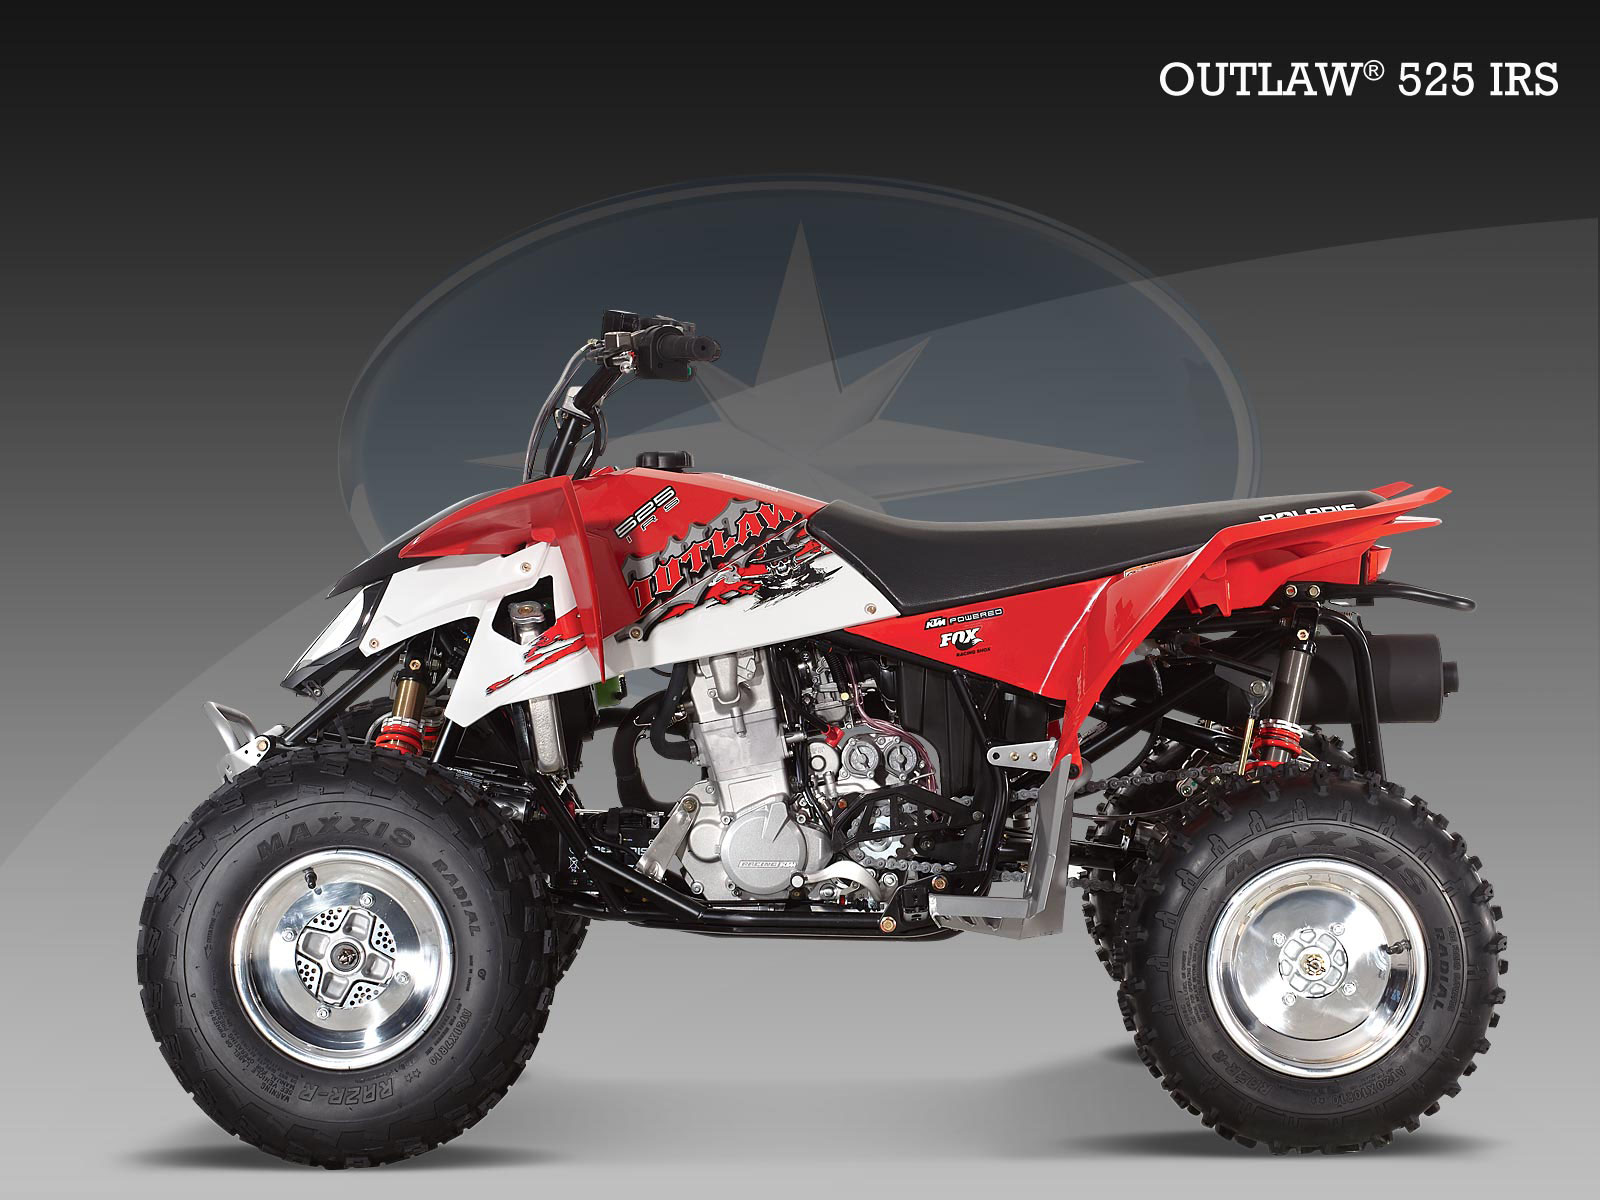 polaris outlaw 525 irs specs 2009 2010 autoevolution. Black Bedroom Furniture Sets. Home Design Ideas